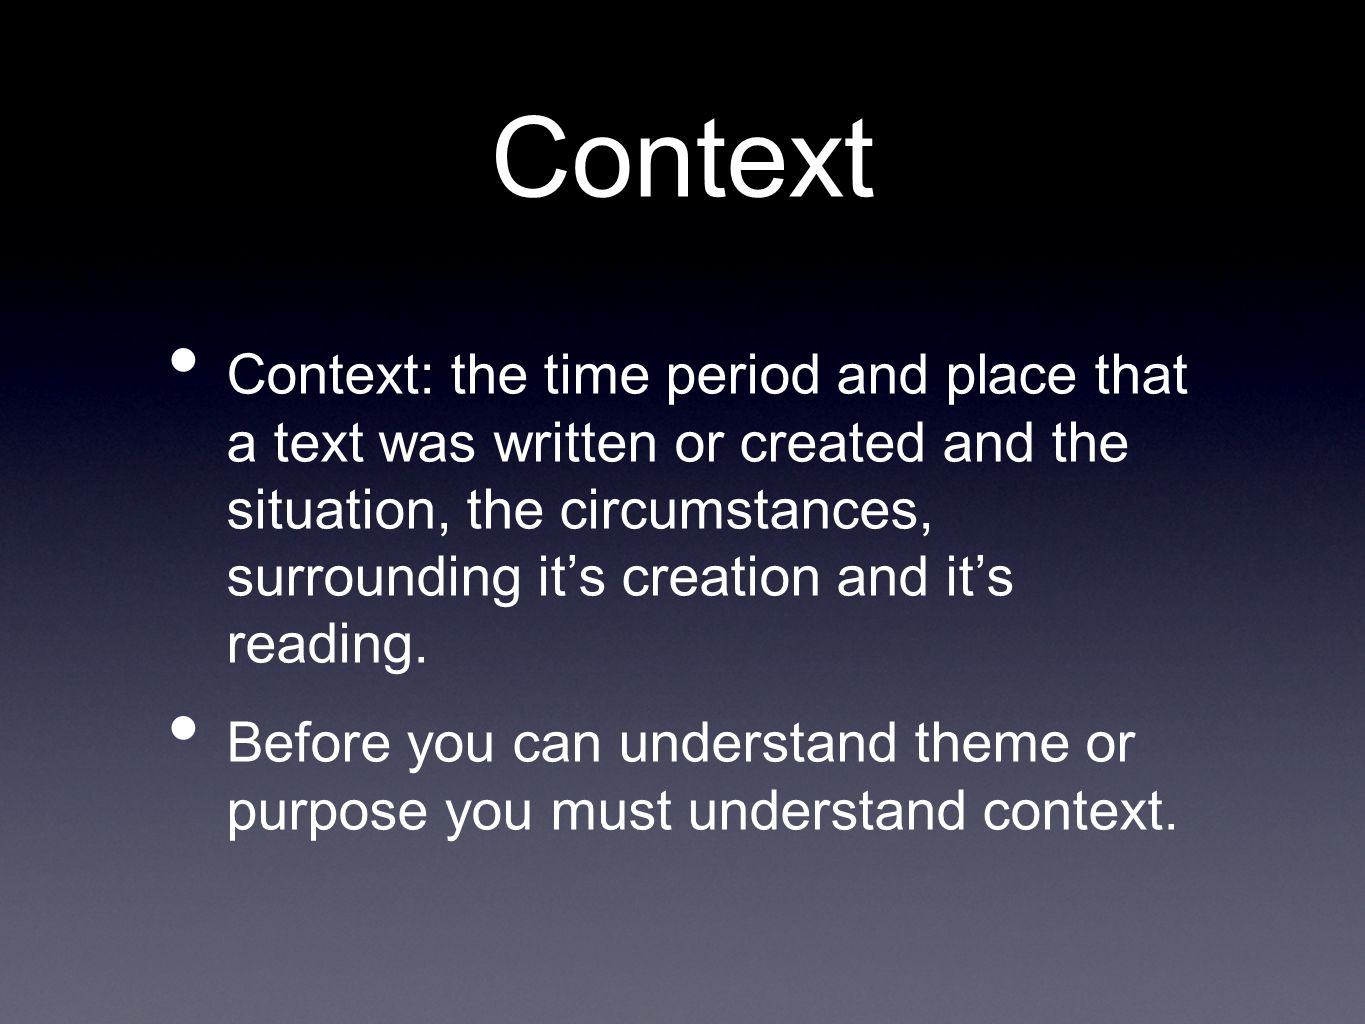 Context Context: the time period and place that a text was written or created and the situation, the circumstances, surrounding it's creation and it's reading.